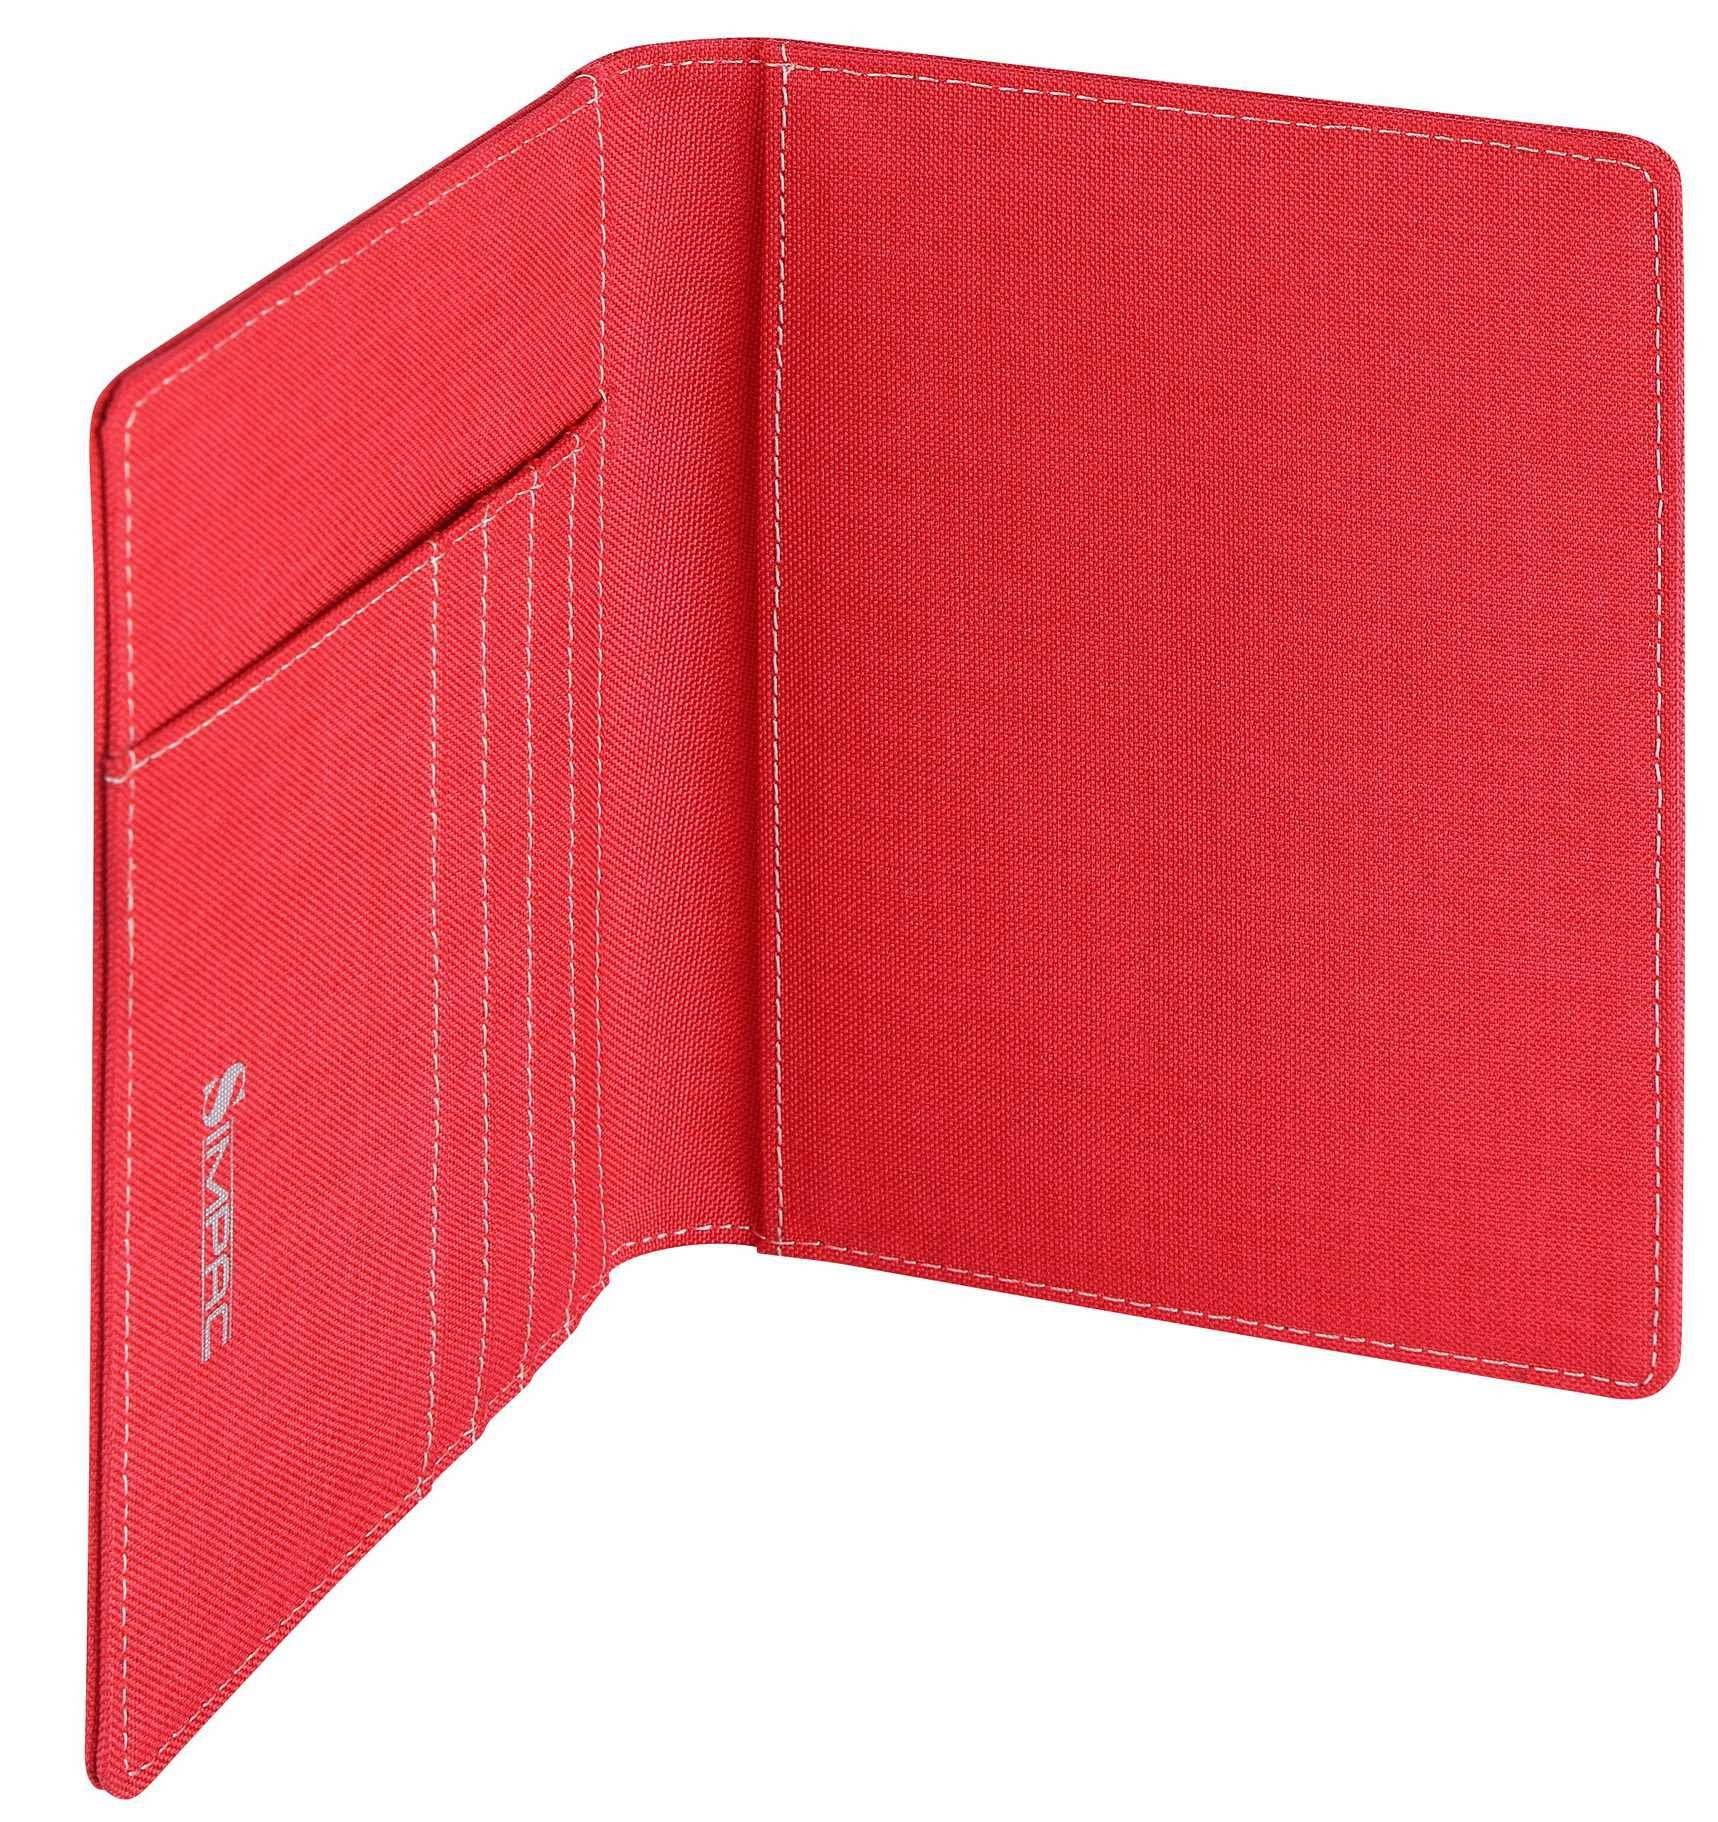 SimpacX Fabric Passport Holder Wallet Cover Case RFID Blocking Travel Wallet (holder plus tag red) by SimpacX (Image #5)